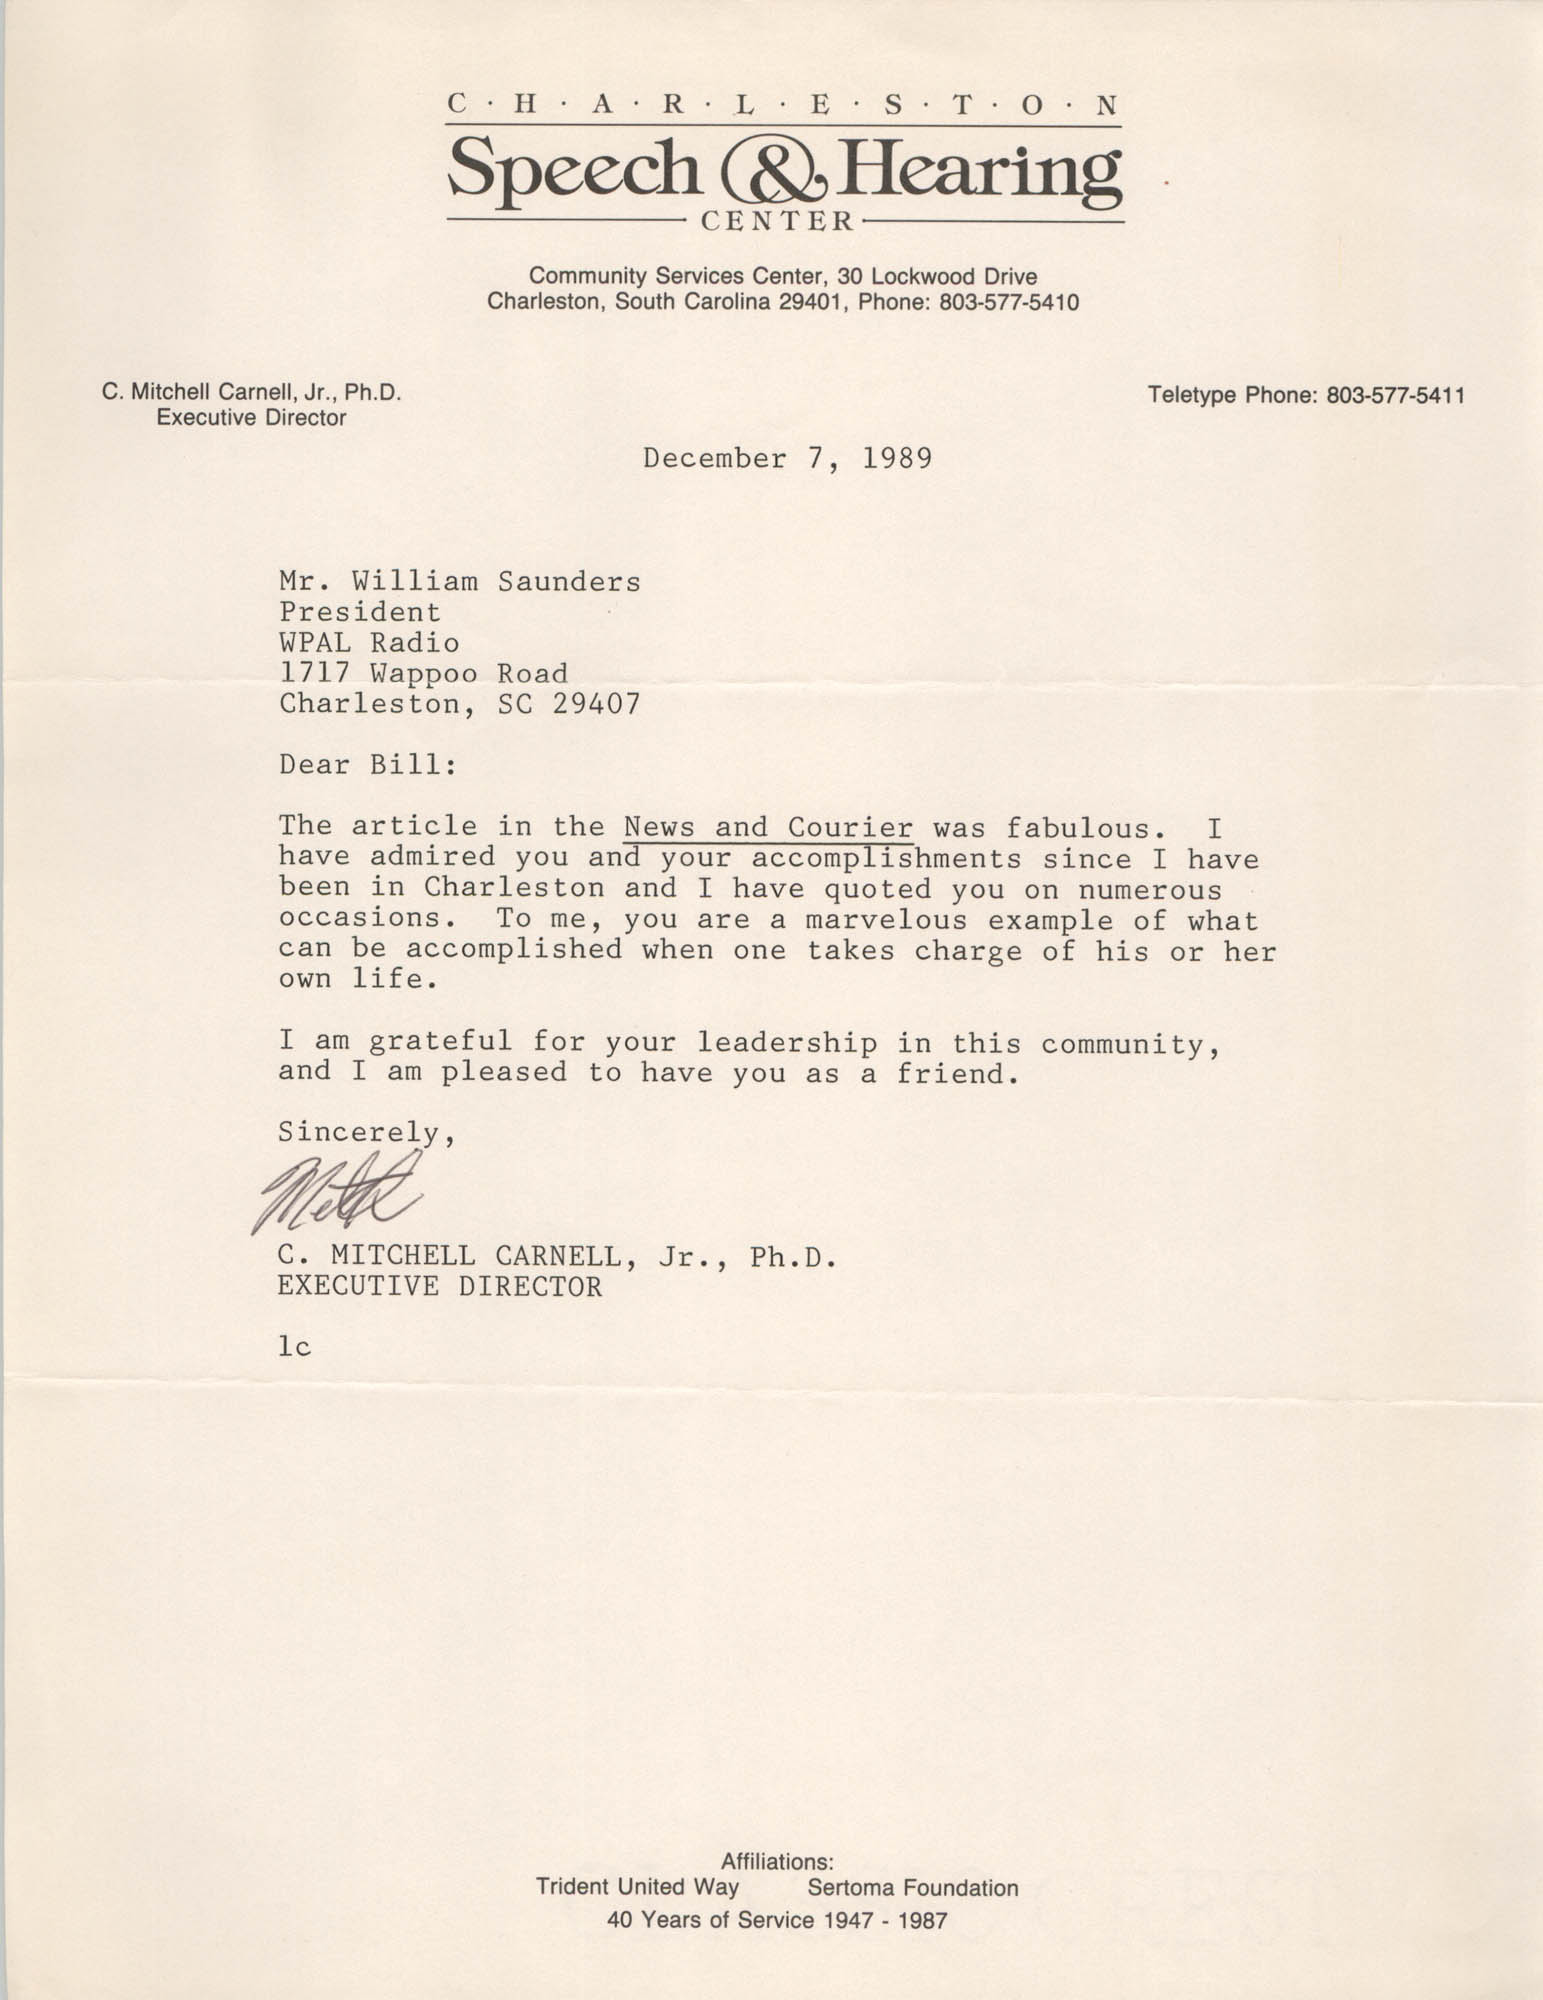 Letter from C. Mitchell Carnell, Jr. to William Saunders, December 7, 1989